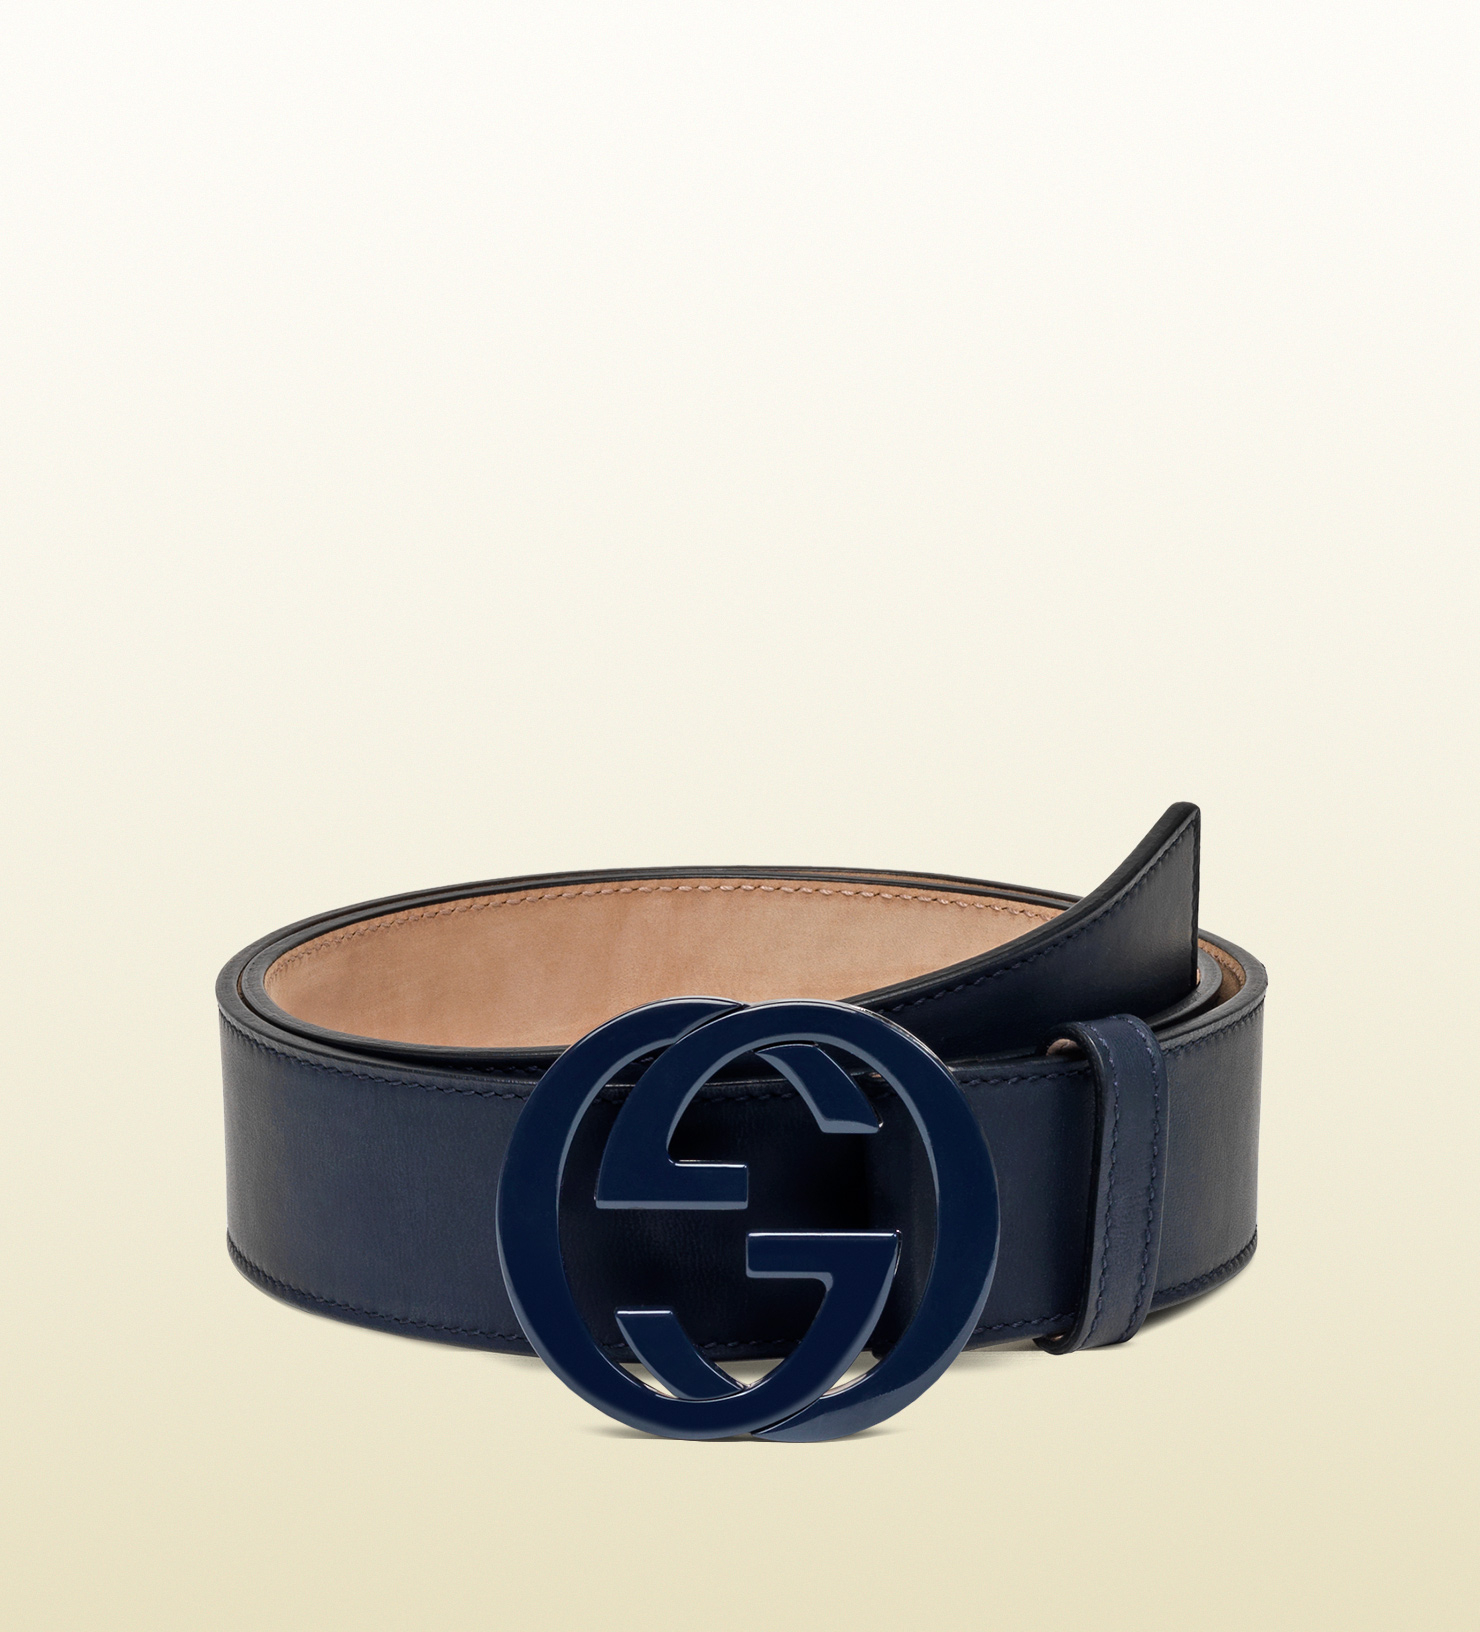 Gucci Leather Belt With Interlocking G Buckle In Blue For